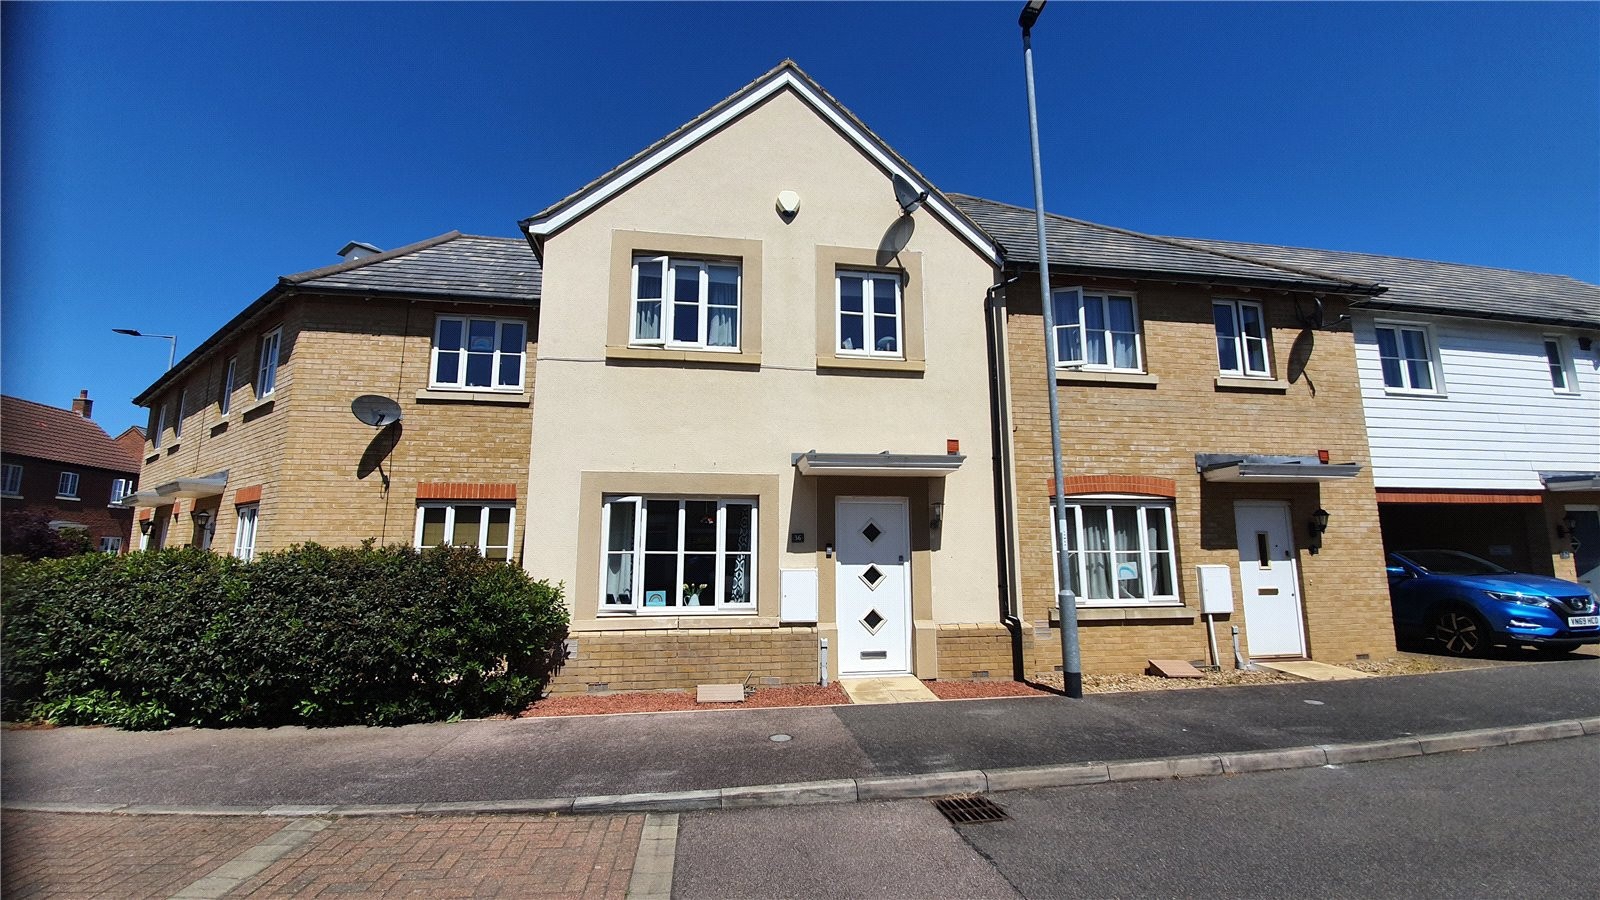 3 bed house for sale in Stocker Way, Eynesbury 0